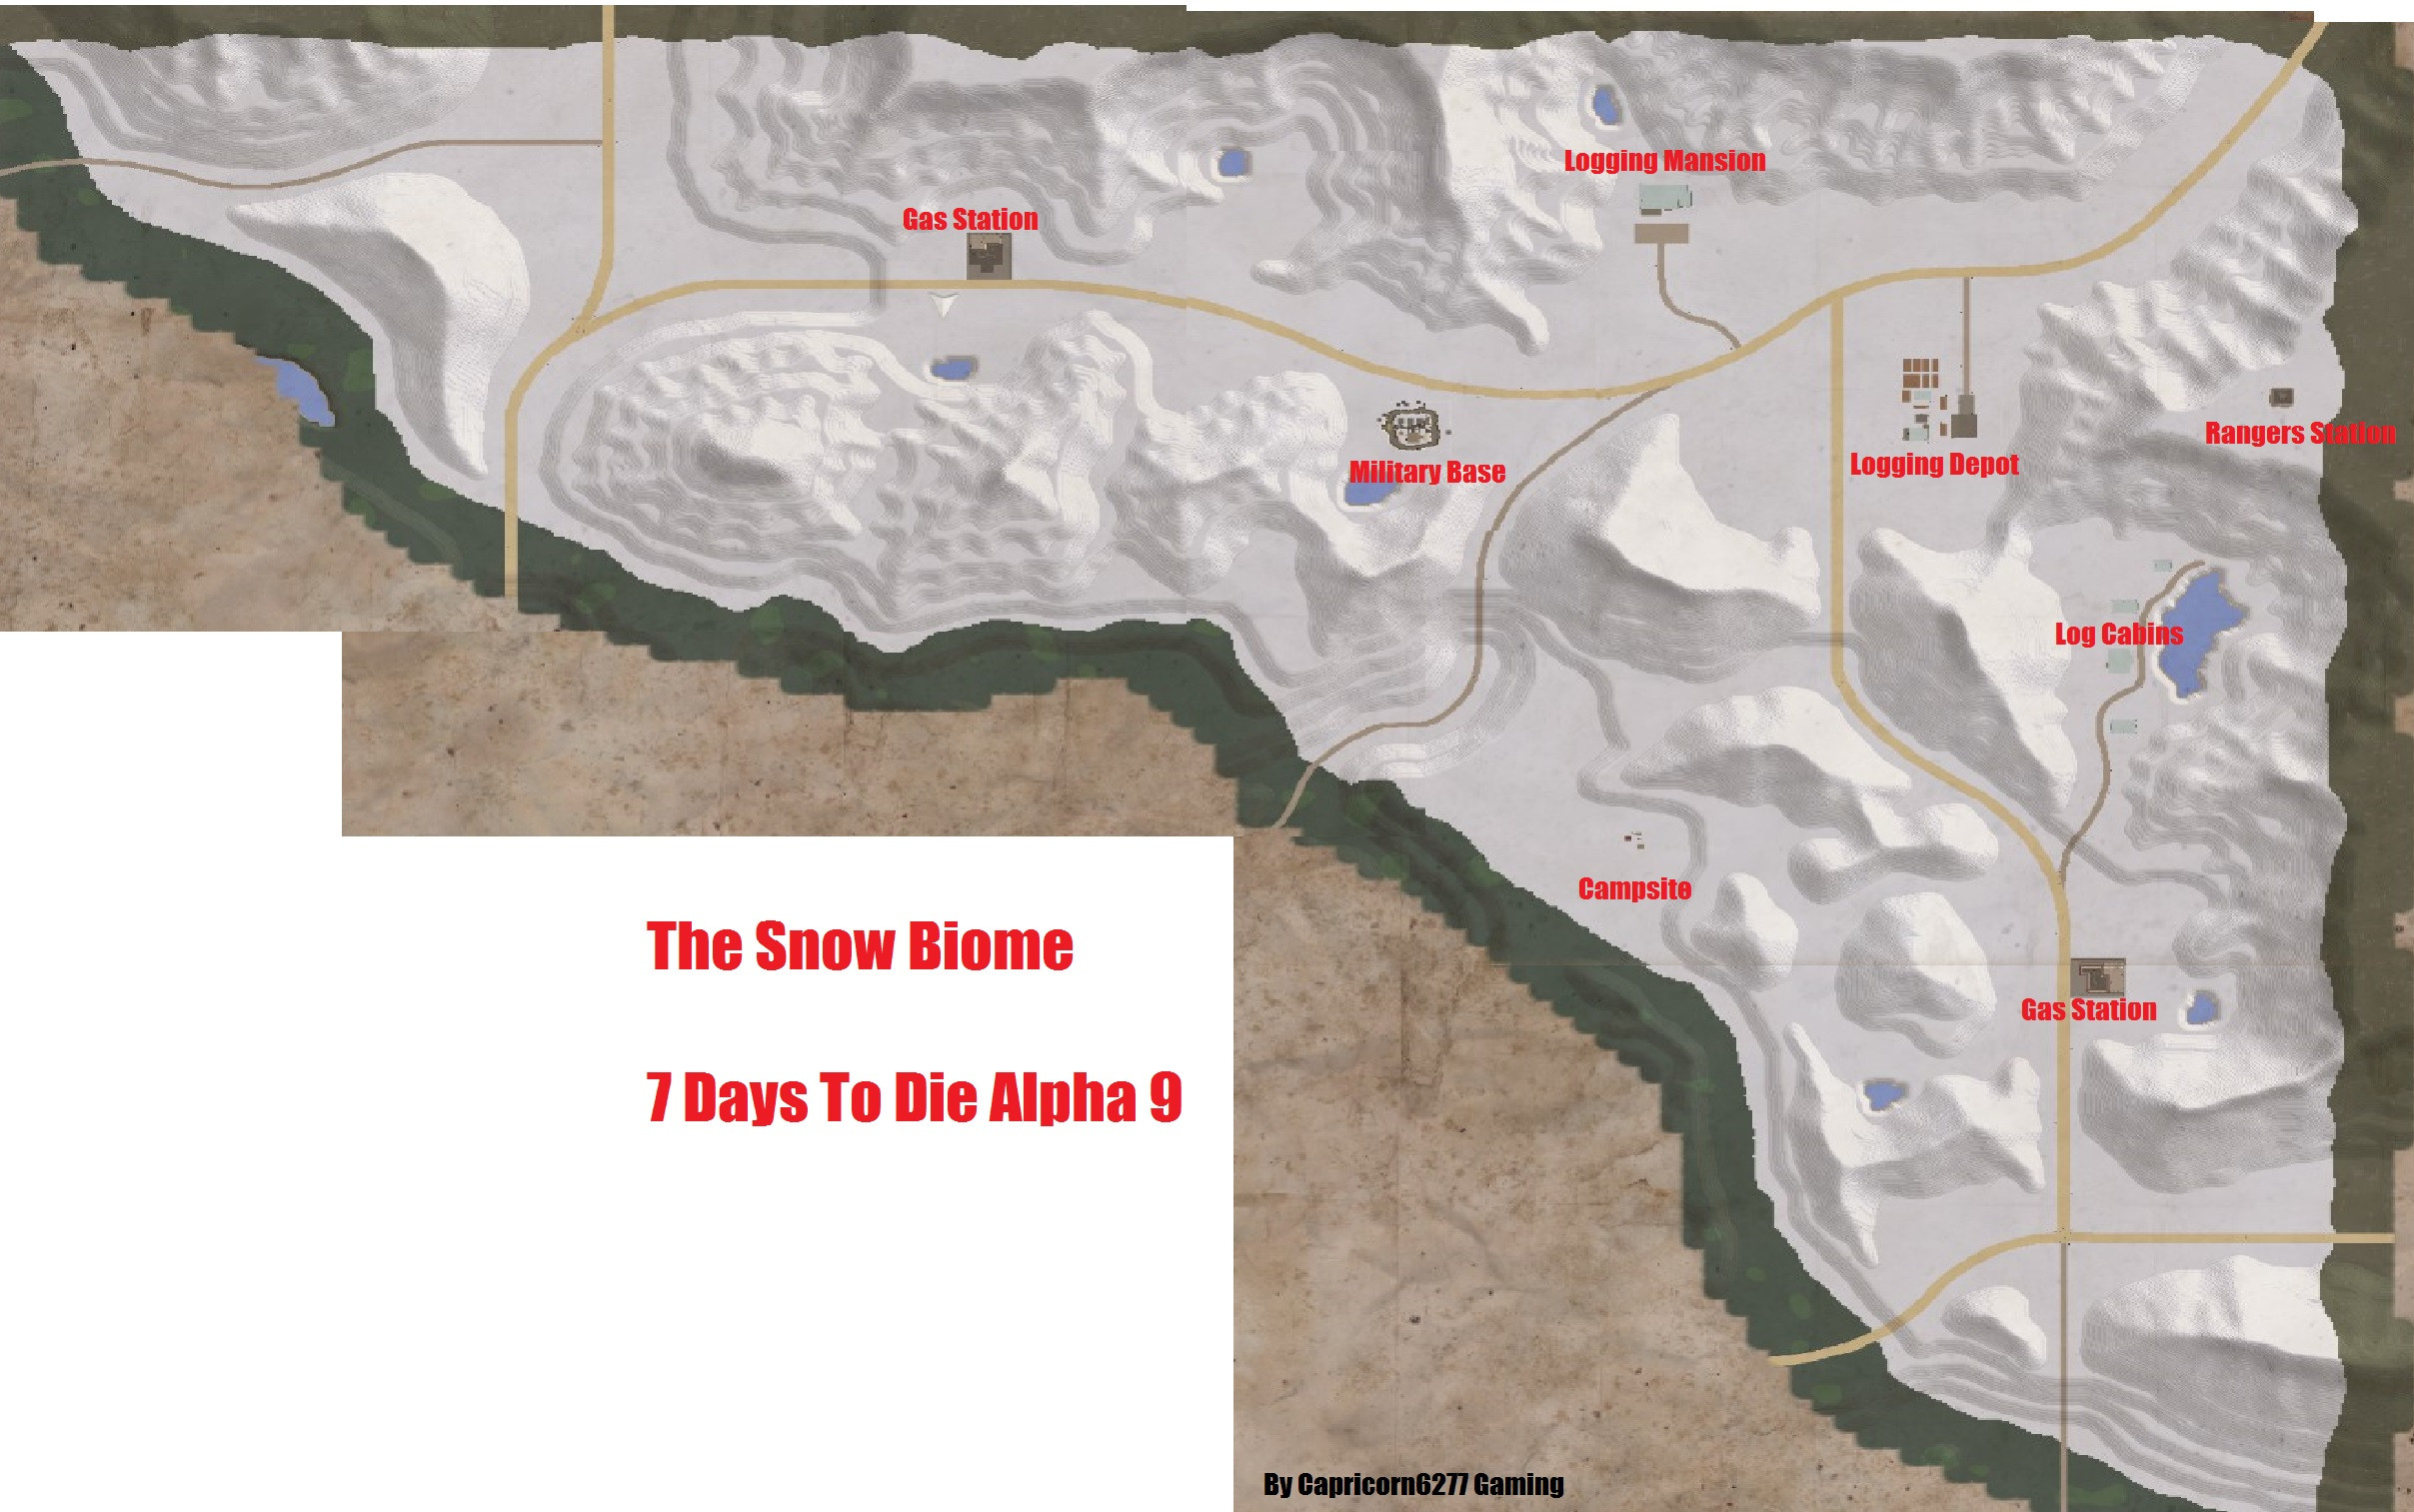 7 Days To Die Printable Map Luxury Steam Munity Guide 7 Days To Die Biomes Poi Locations Alpha